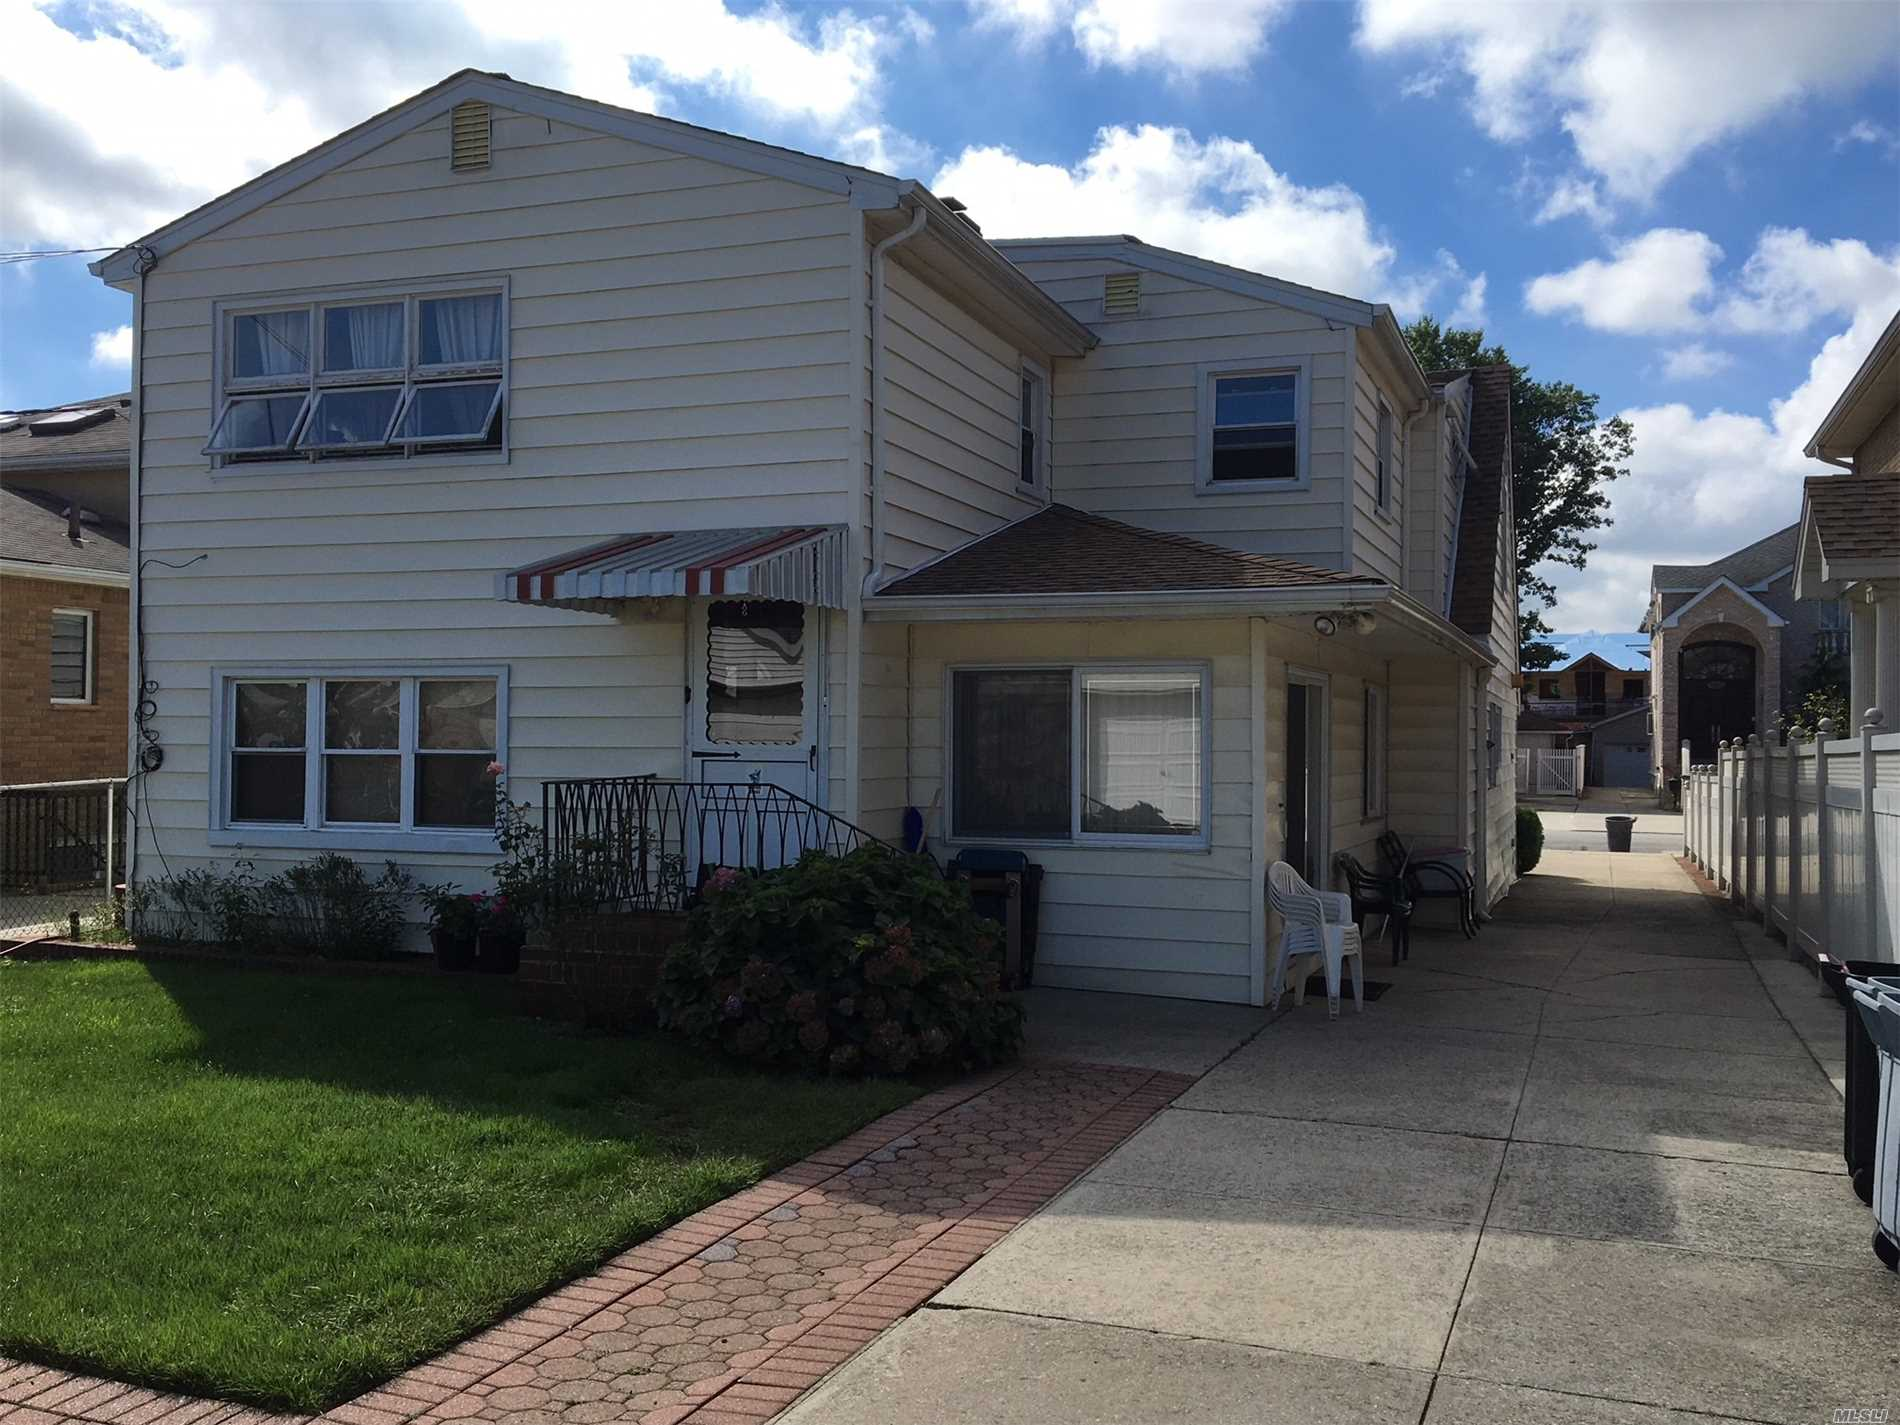 Rare Investment Opportunity In The Heart Of Whitestone!! Legal Two Family On Extra Deep Lot!!, 5 Bedrooms (Could Be 6 Bedrooms), 3 Bath With Two 2 Car Garages!! Long Driveway, Very Conveniently Located Near Shopping, Buses, Parkways, La Guardia, Whitestone Bridge.